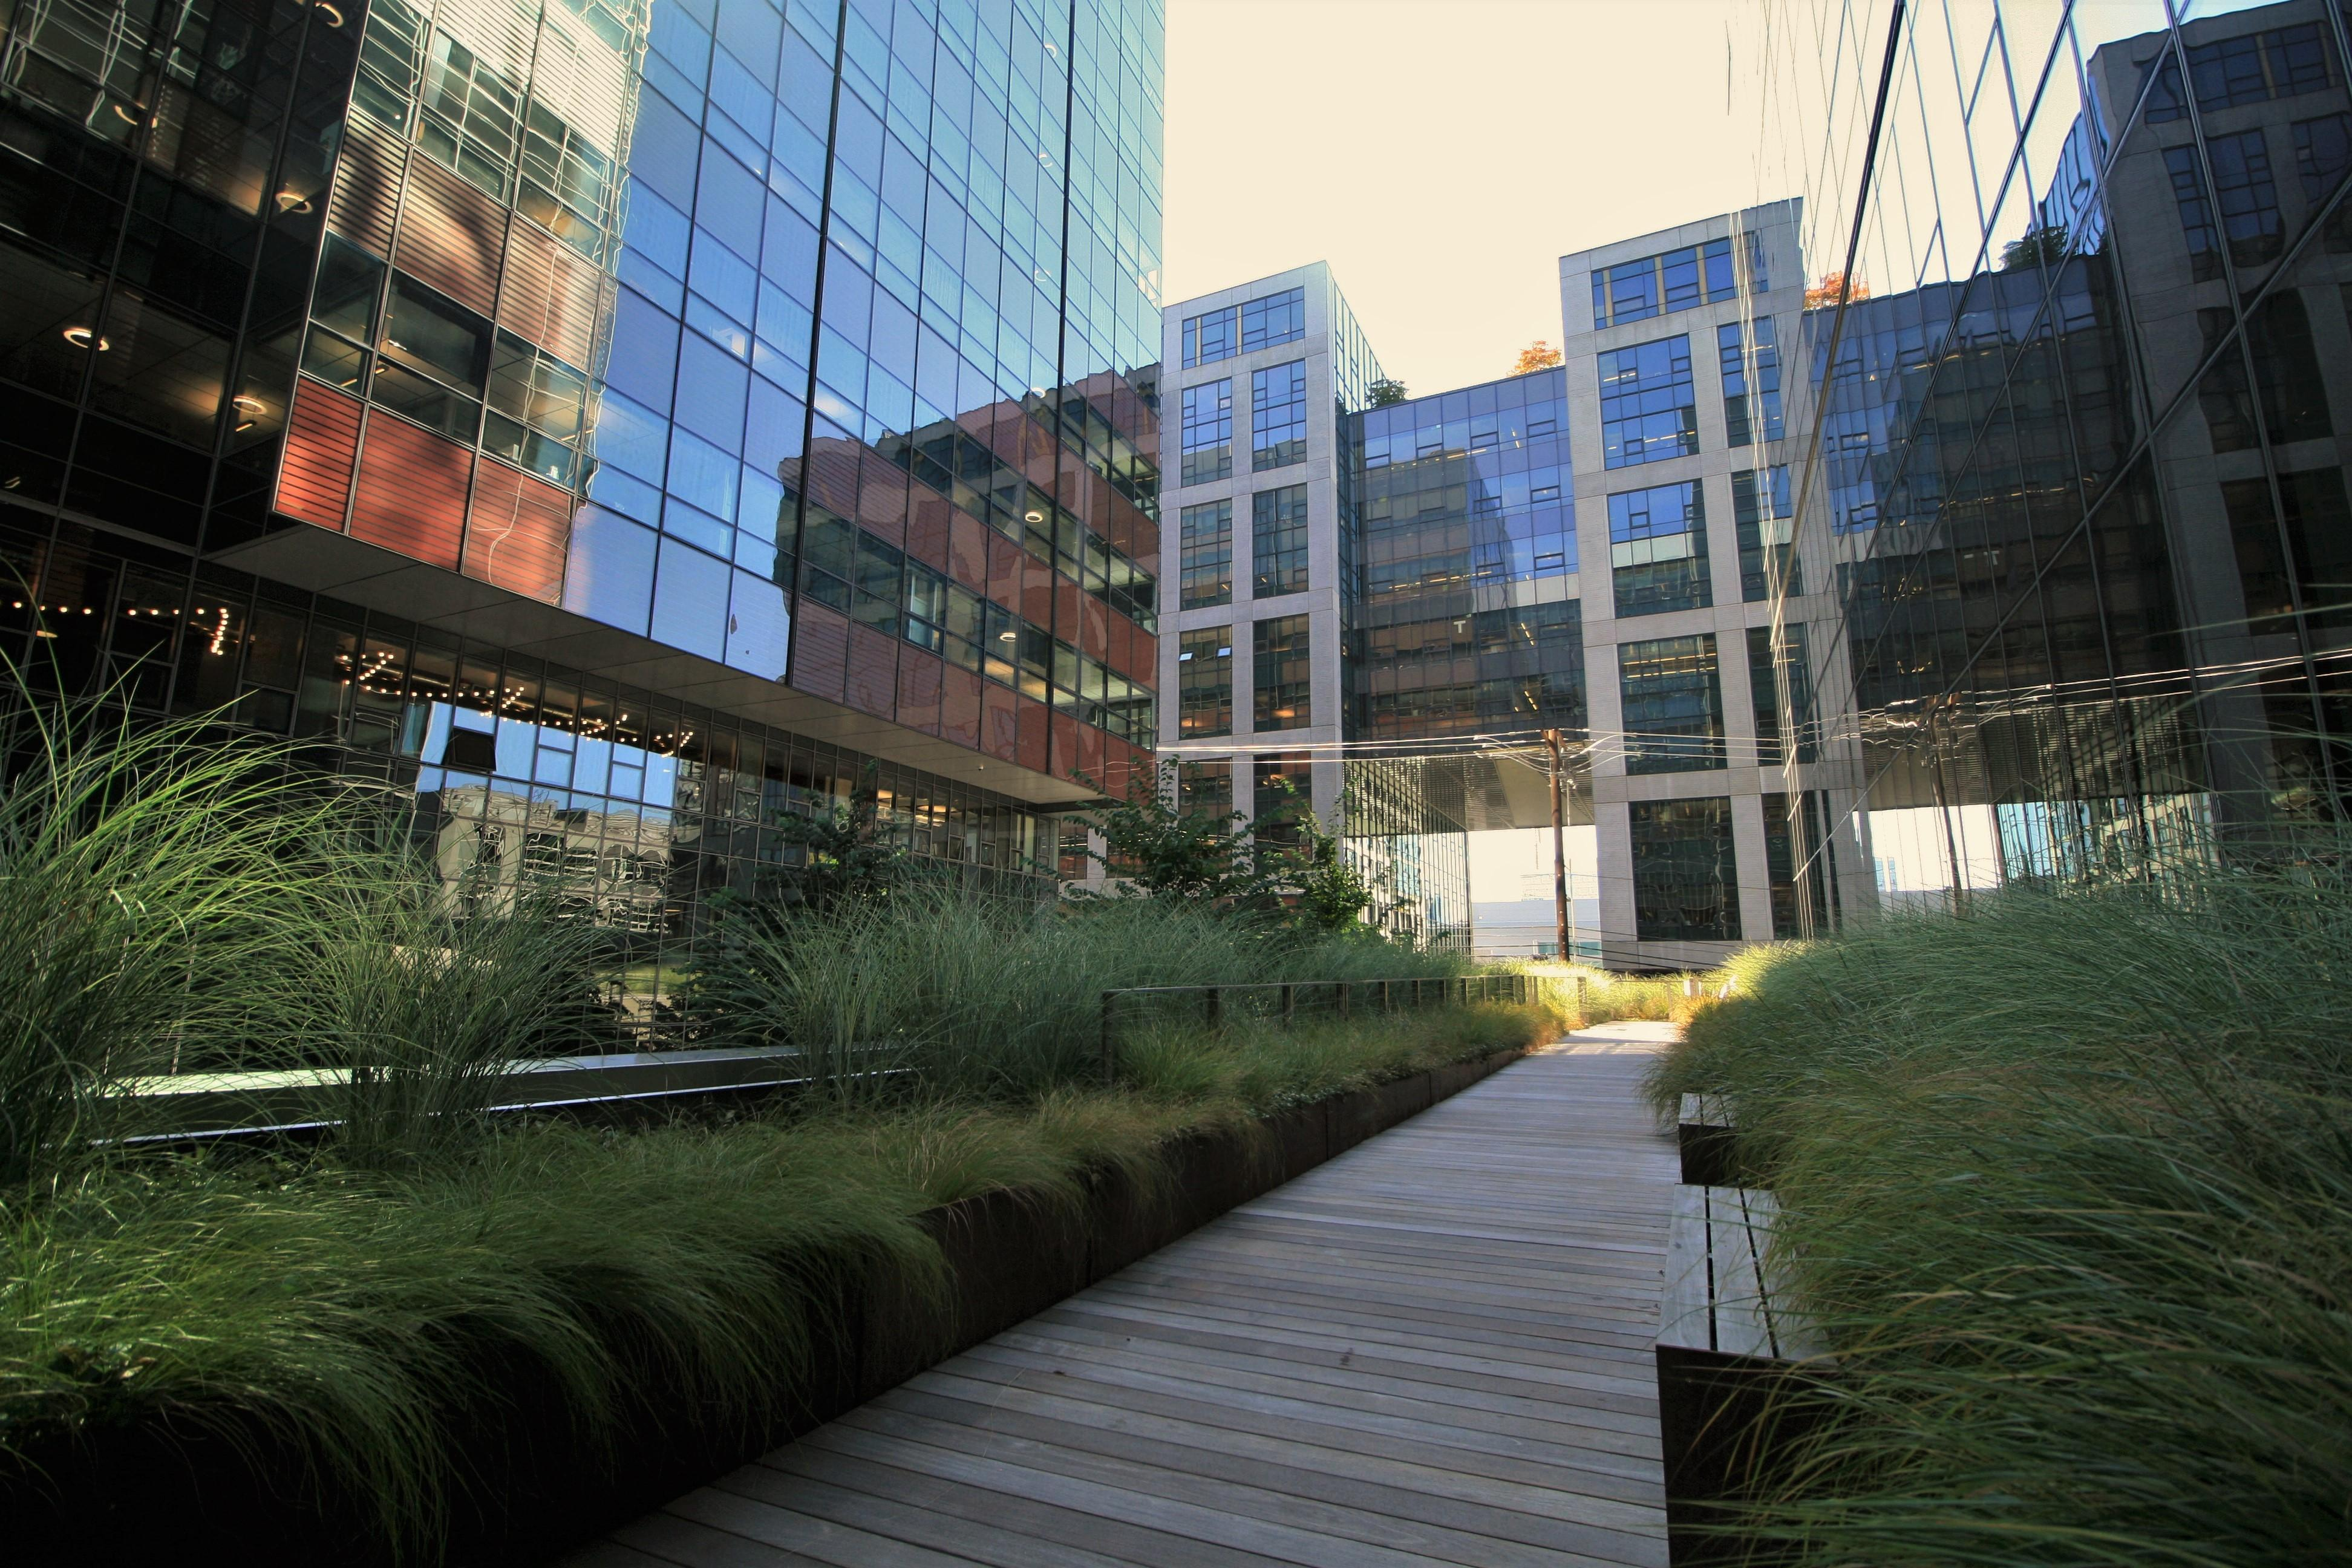 Tucked into a gentle slope between two office towers in South Lake Union you'll find an extended walkway with benches, tables and cheerful greenery. (Image: Elizabeth Blanton / Seattle Refined)